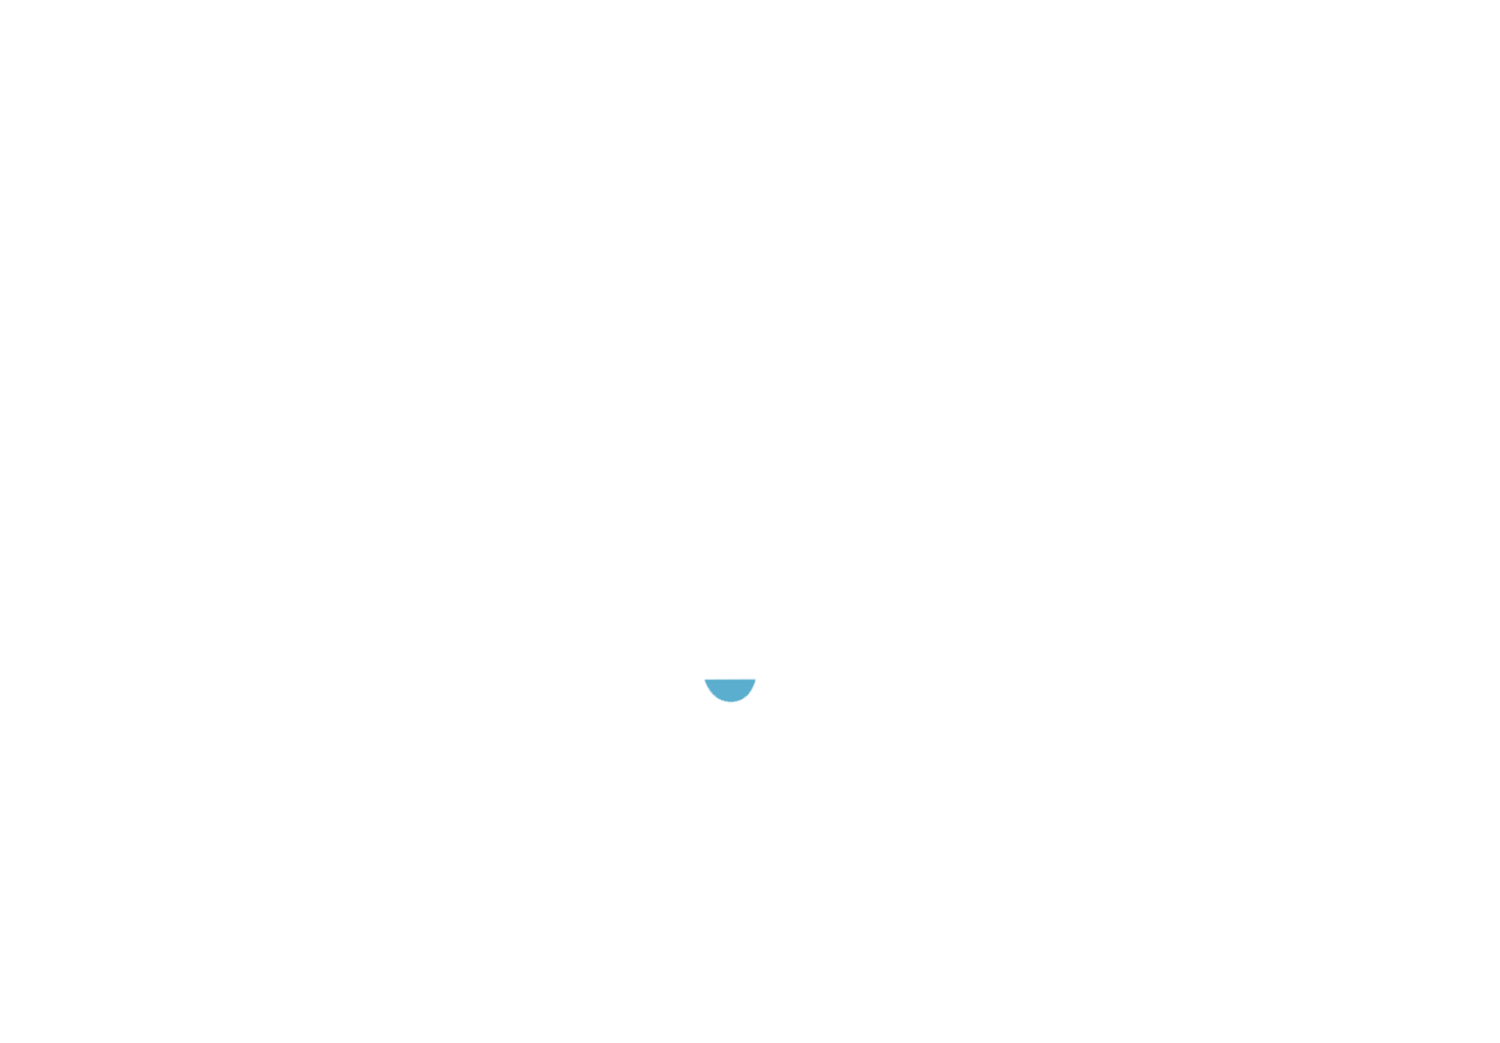 The David Thomas Awards